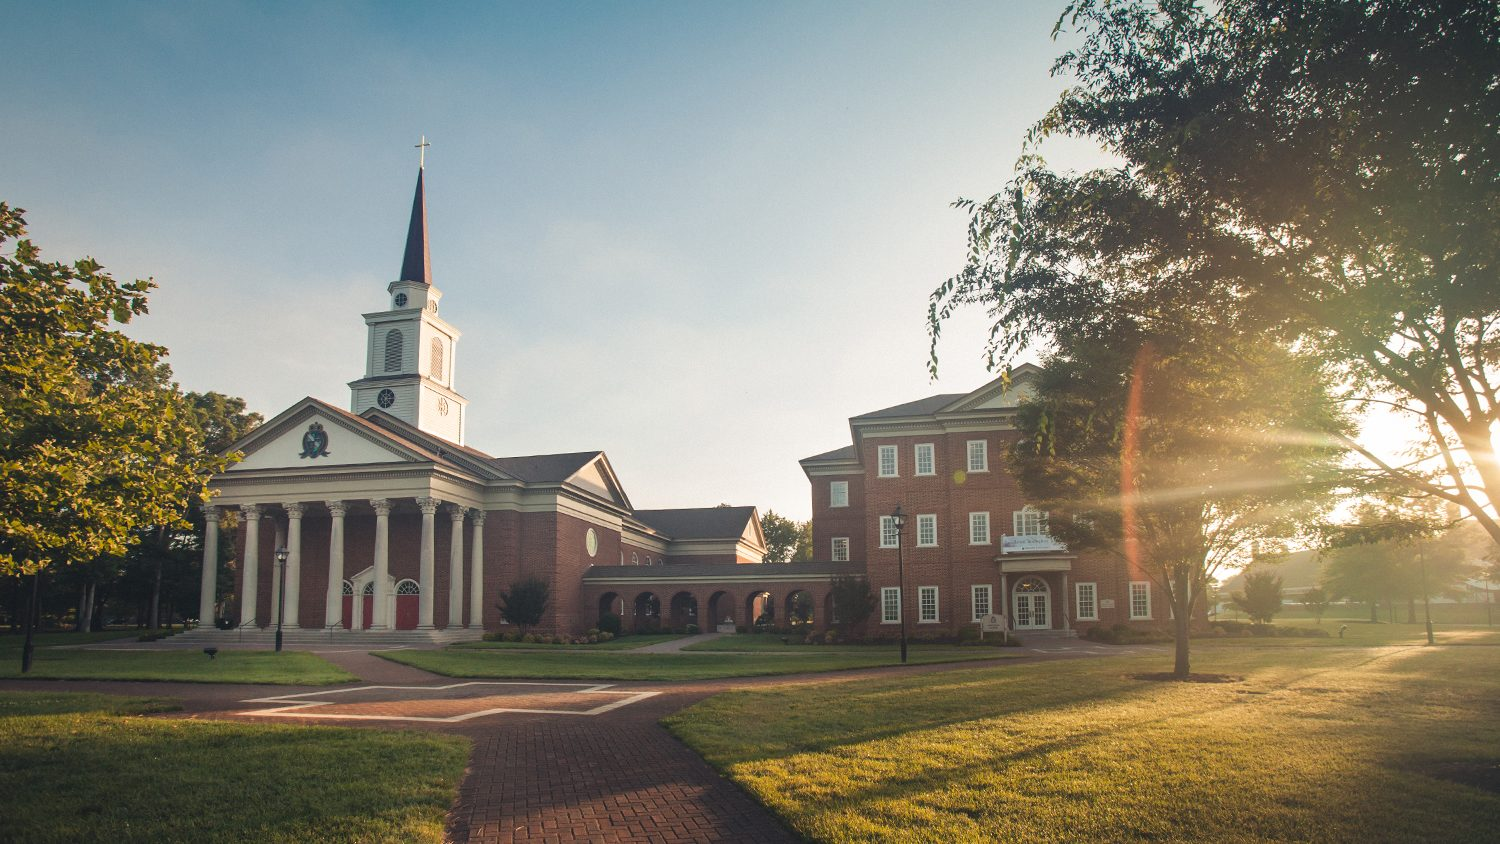 A professor of Regent University's divinity school was appointed to the Professional Advisory Group of the Hampton Roads Clinical Pastoral Education (CPE) Center at the Hampton Veterans Administration (VA) Medical Center.